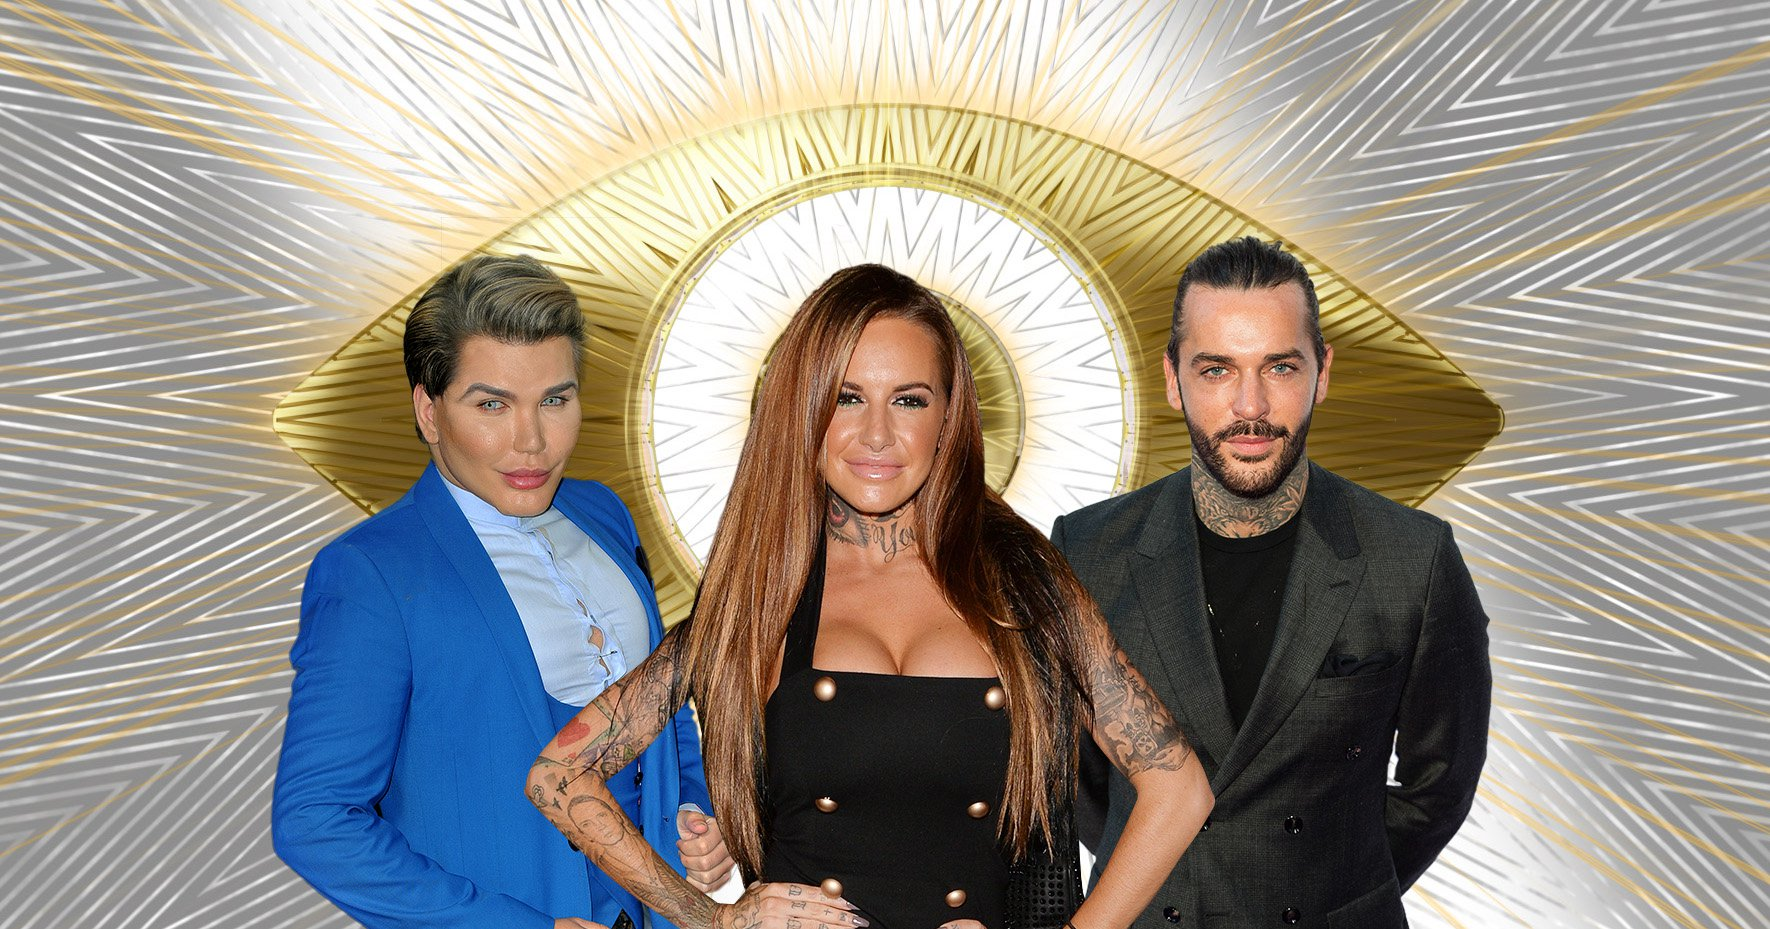 The Celebrity Big Brother line up has reportedly leaked and the list of names is very surprising